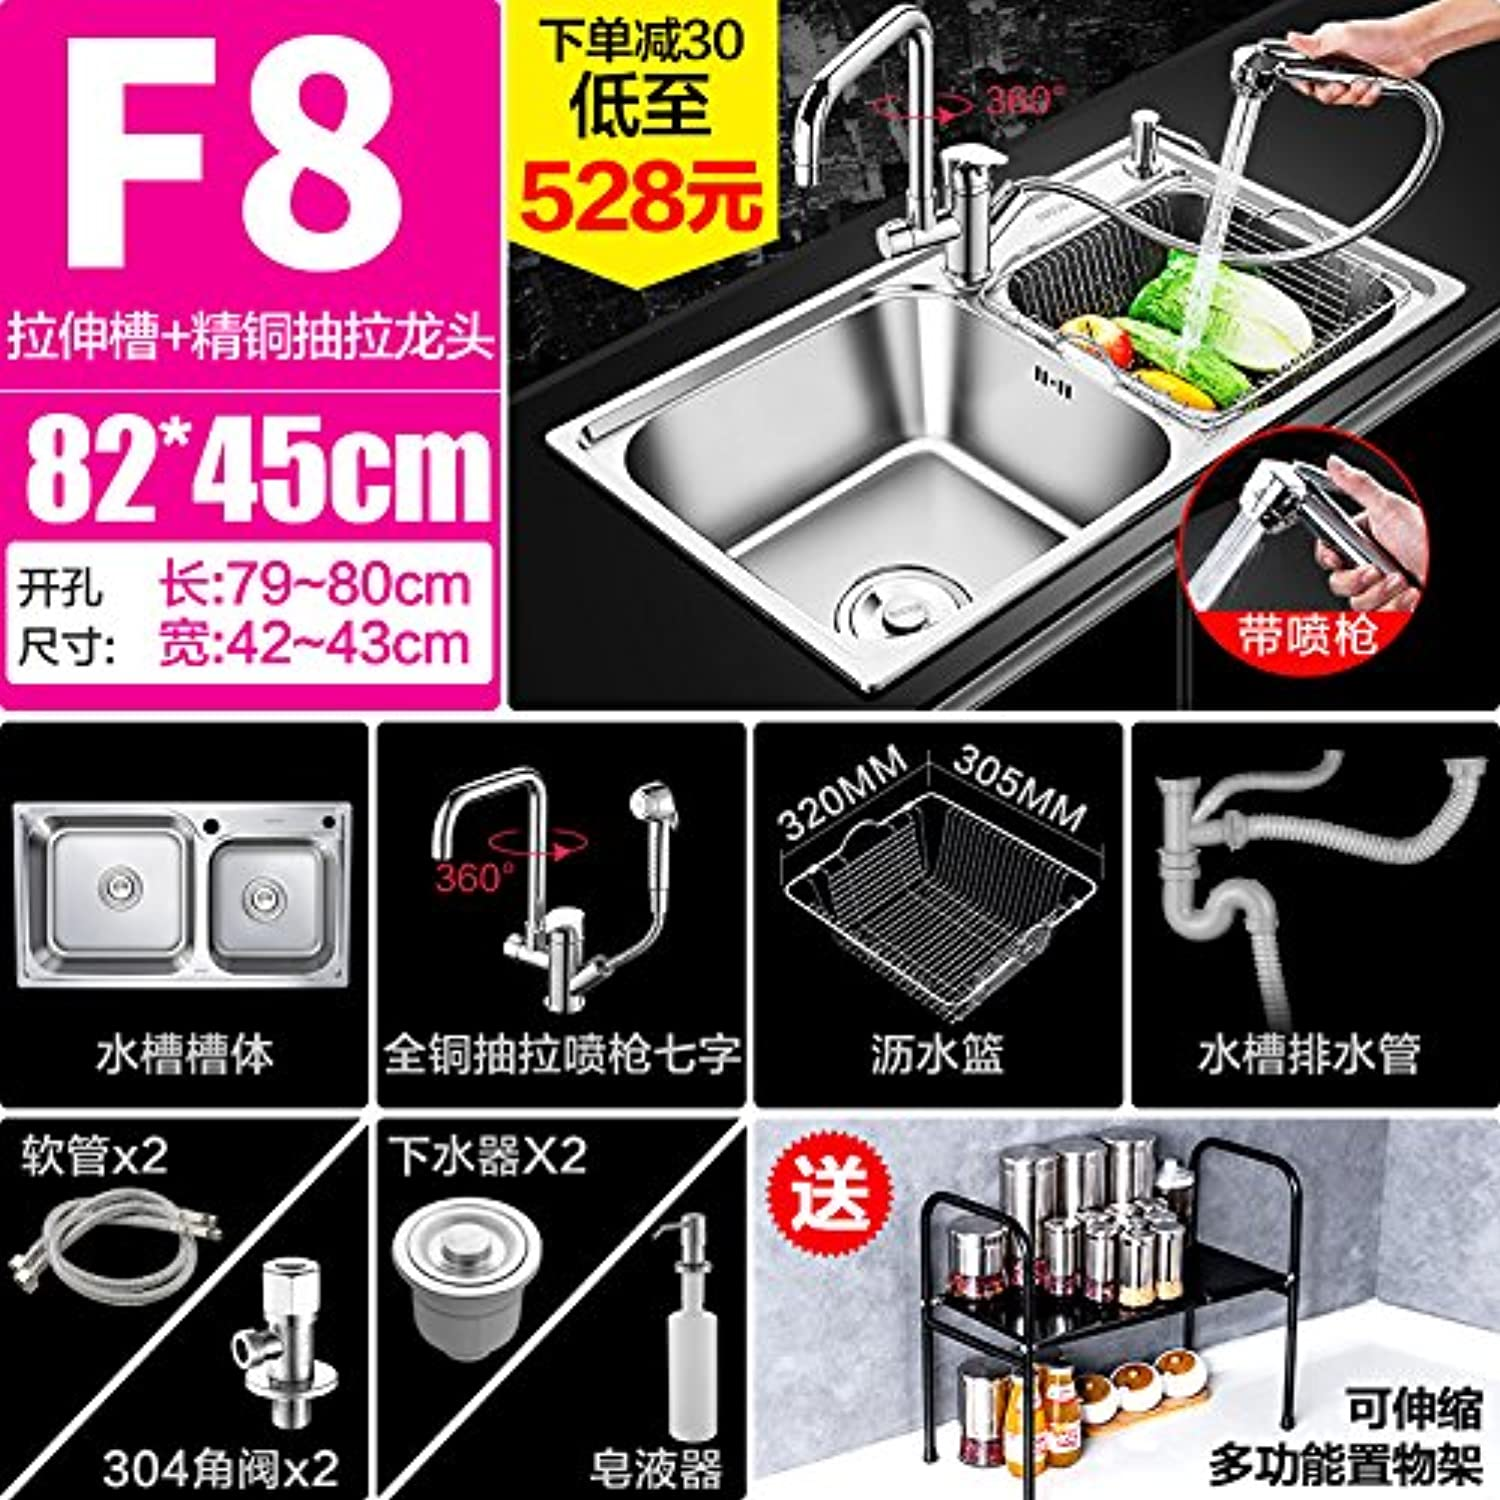 NewBorn Faucet Kitchen Bathroom Sink Mixer Tap Tap Wash Full Copper Hot Cold Single Handle Single Hole Cabinet Toilet Painted White + Plating